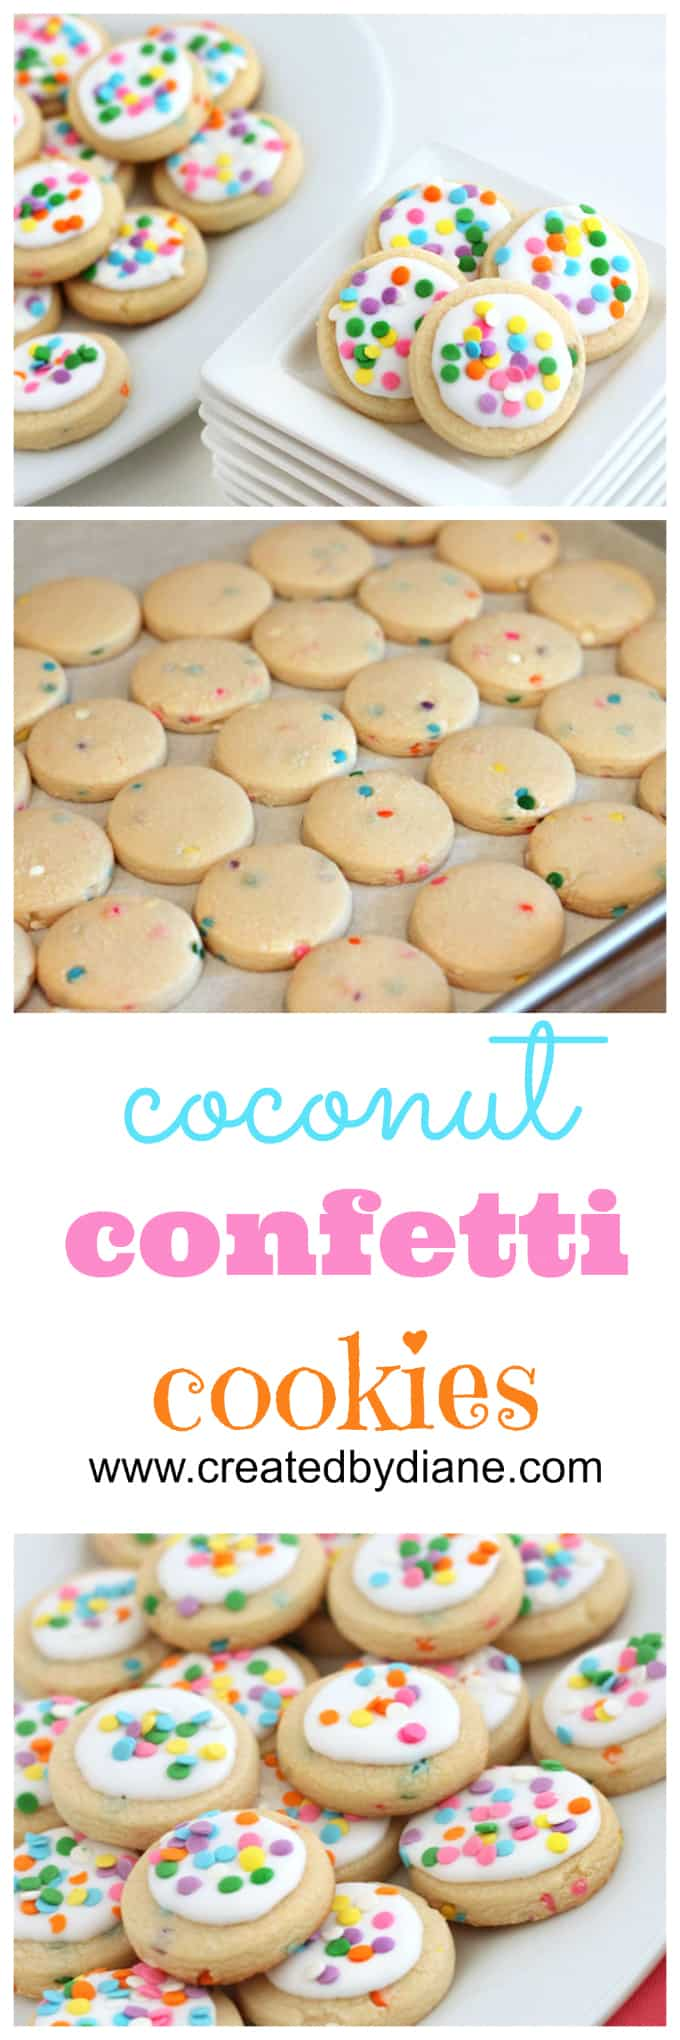 coconut confetti cookies from www.createdbydiane.com